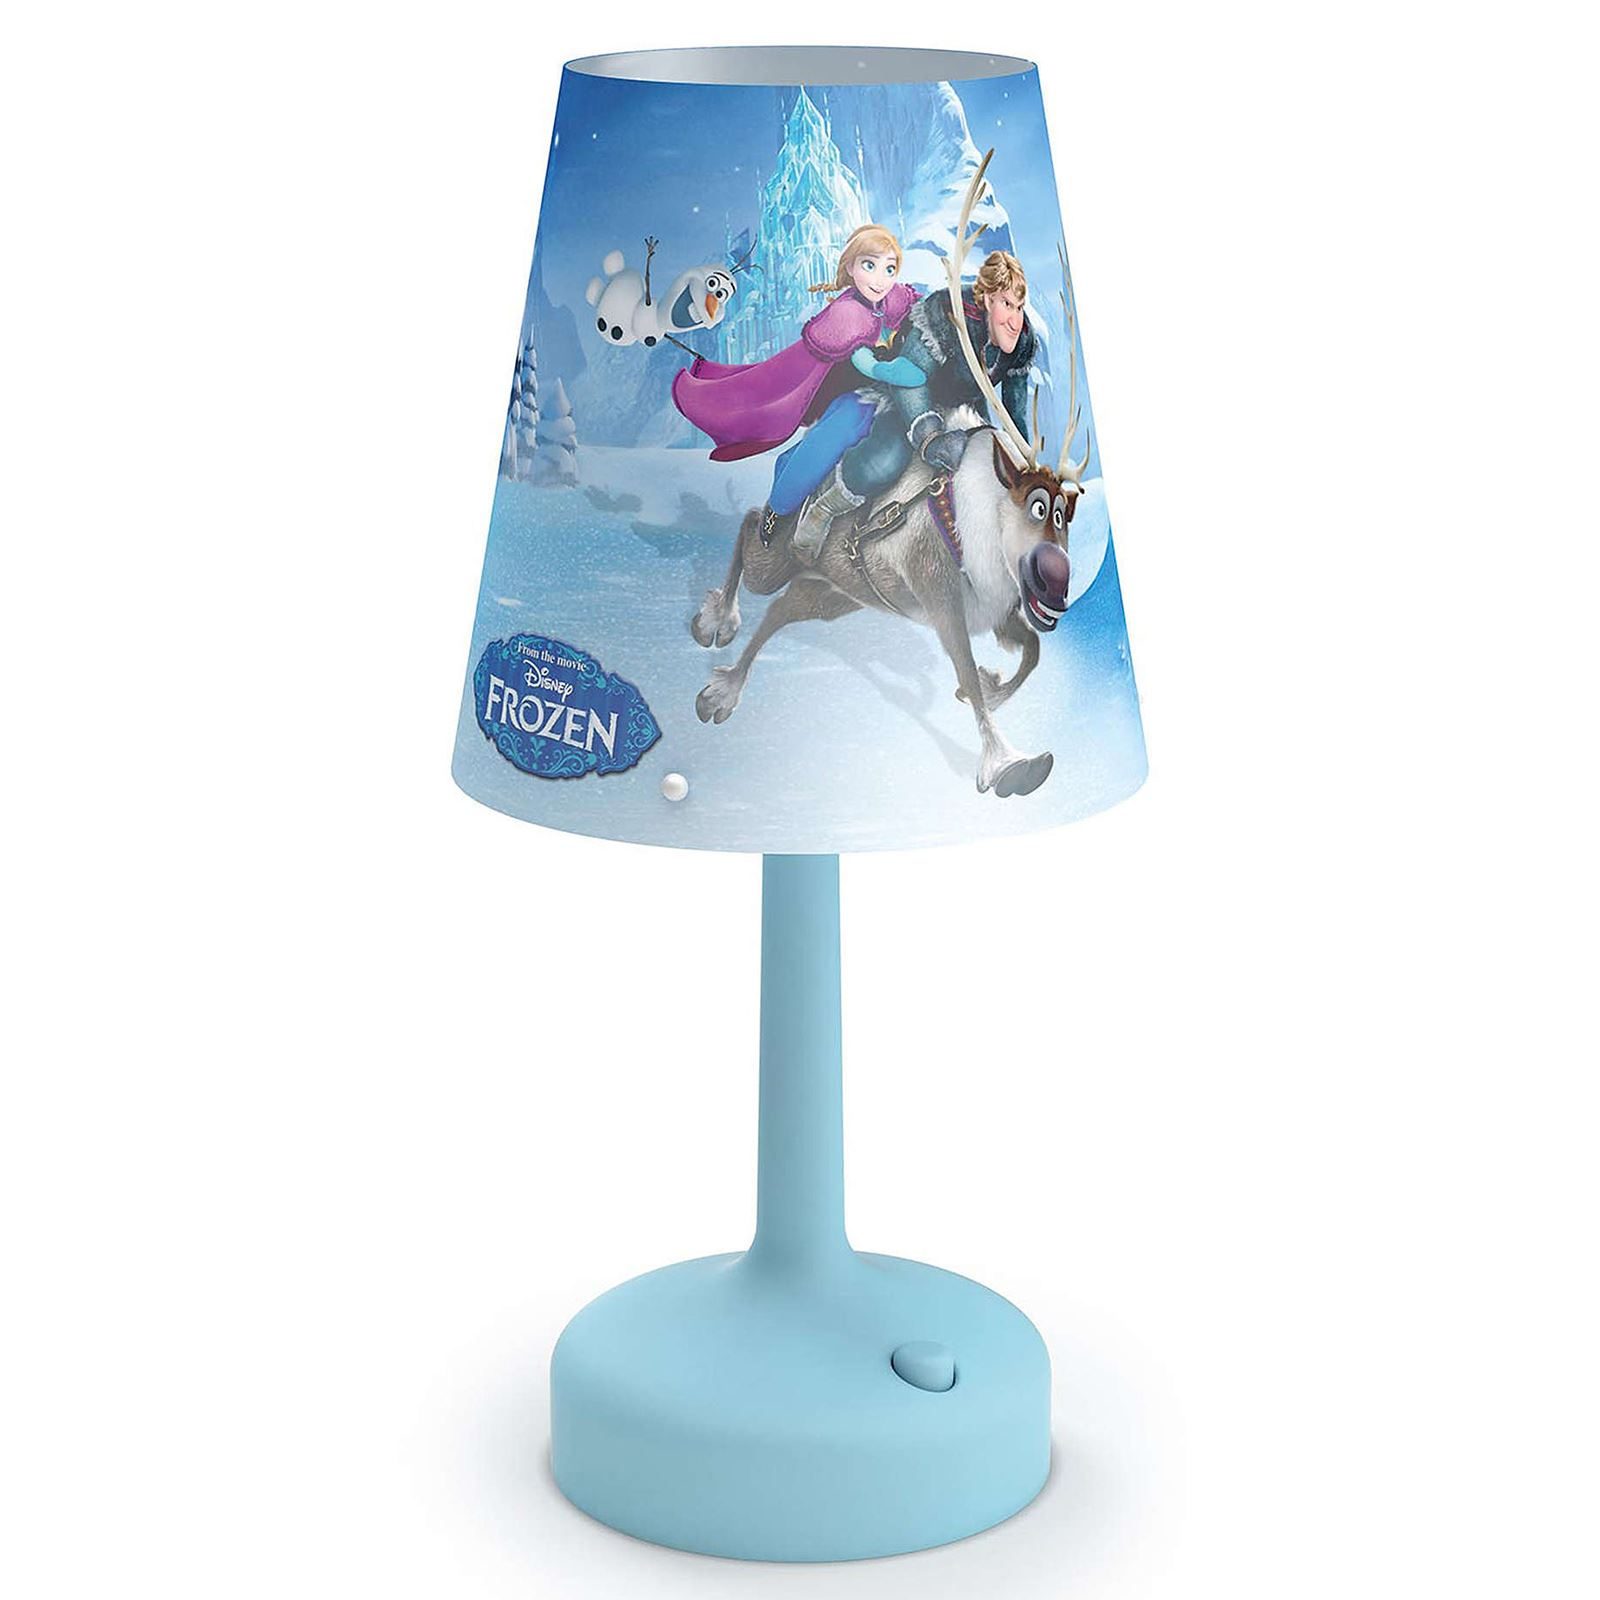 Bedroom Lamps On Ebay: DISNEY FROZEN PORTABLE TABLE LAMP KIDS BEDROOM LIGHTING